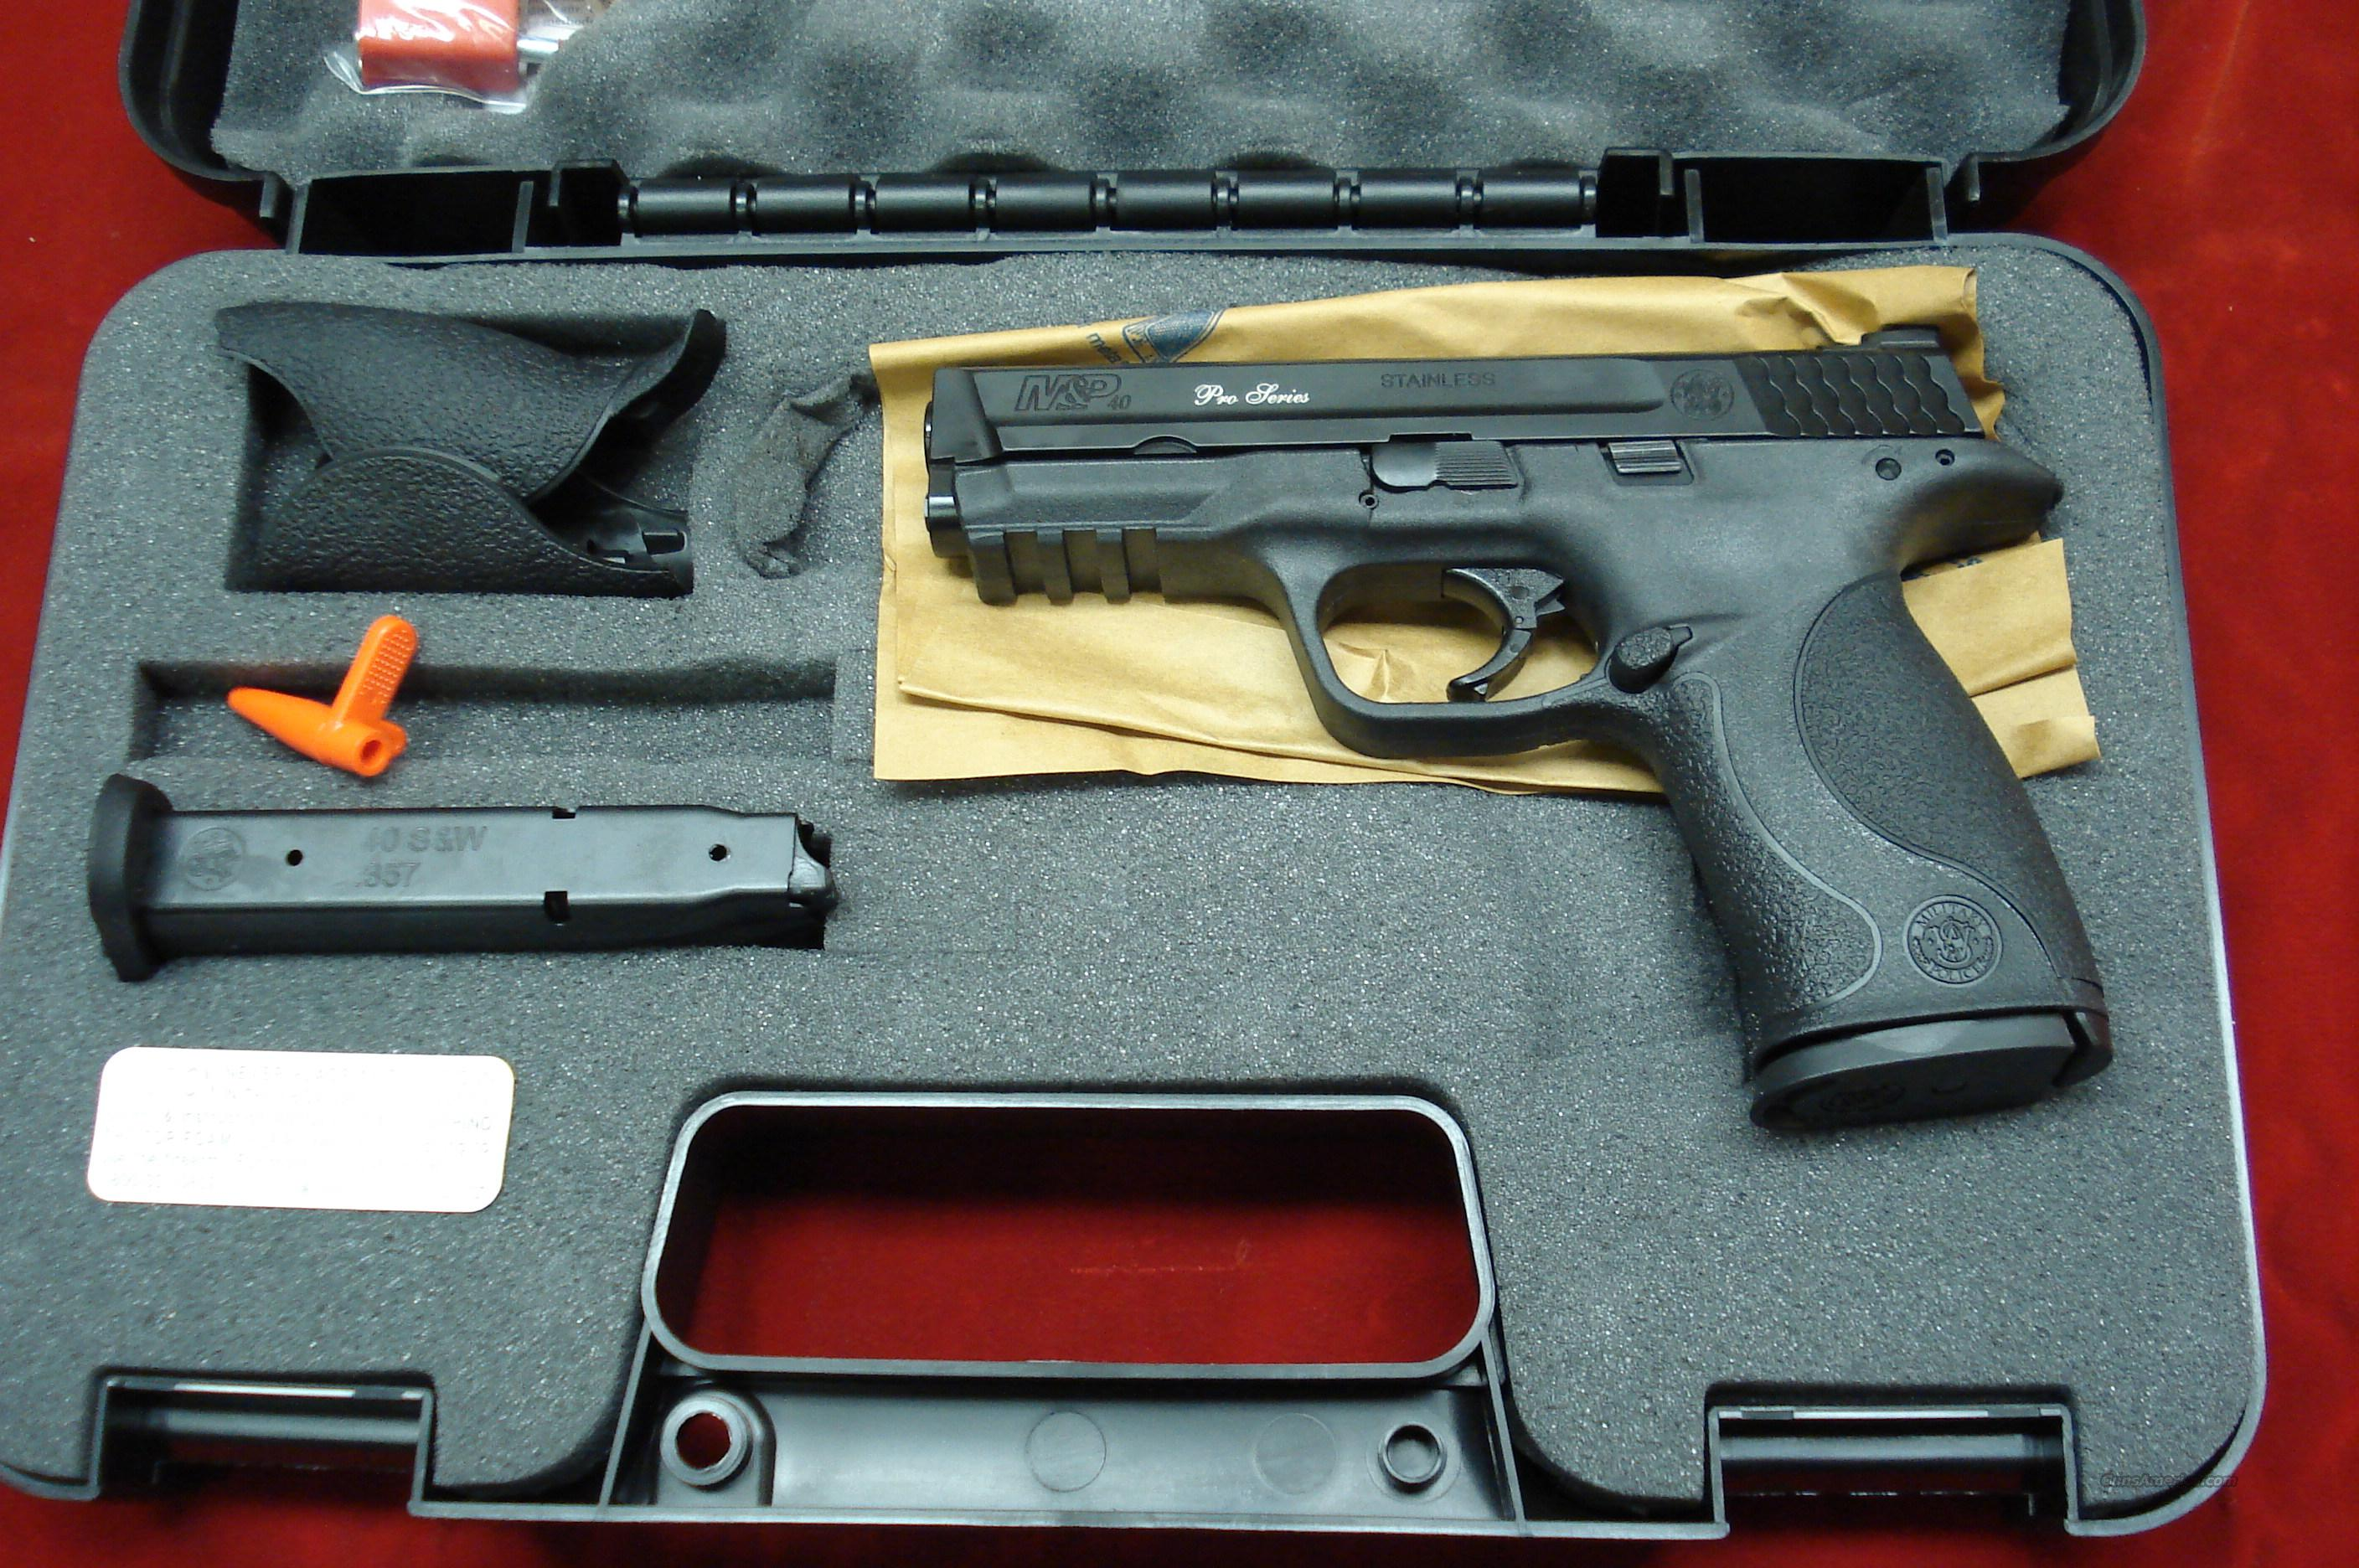 SMITH AND WESSON M&P PRO SERIES .40CAL HIGH/CAP WITH NIGHT SIGHTS NEW   Guns > Pistols > Smith & Wesson Pistols - Autos > Polymer Frame